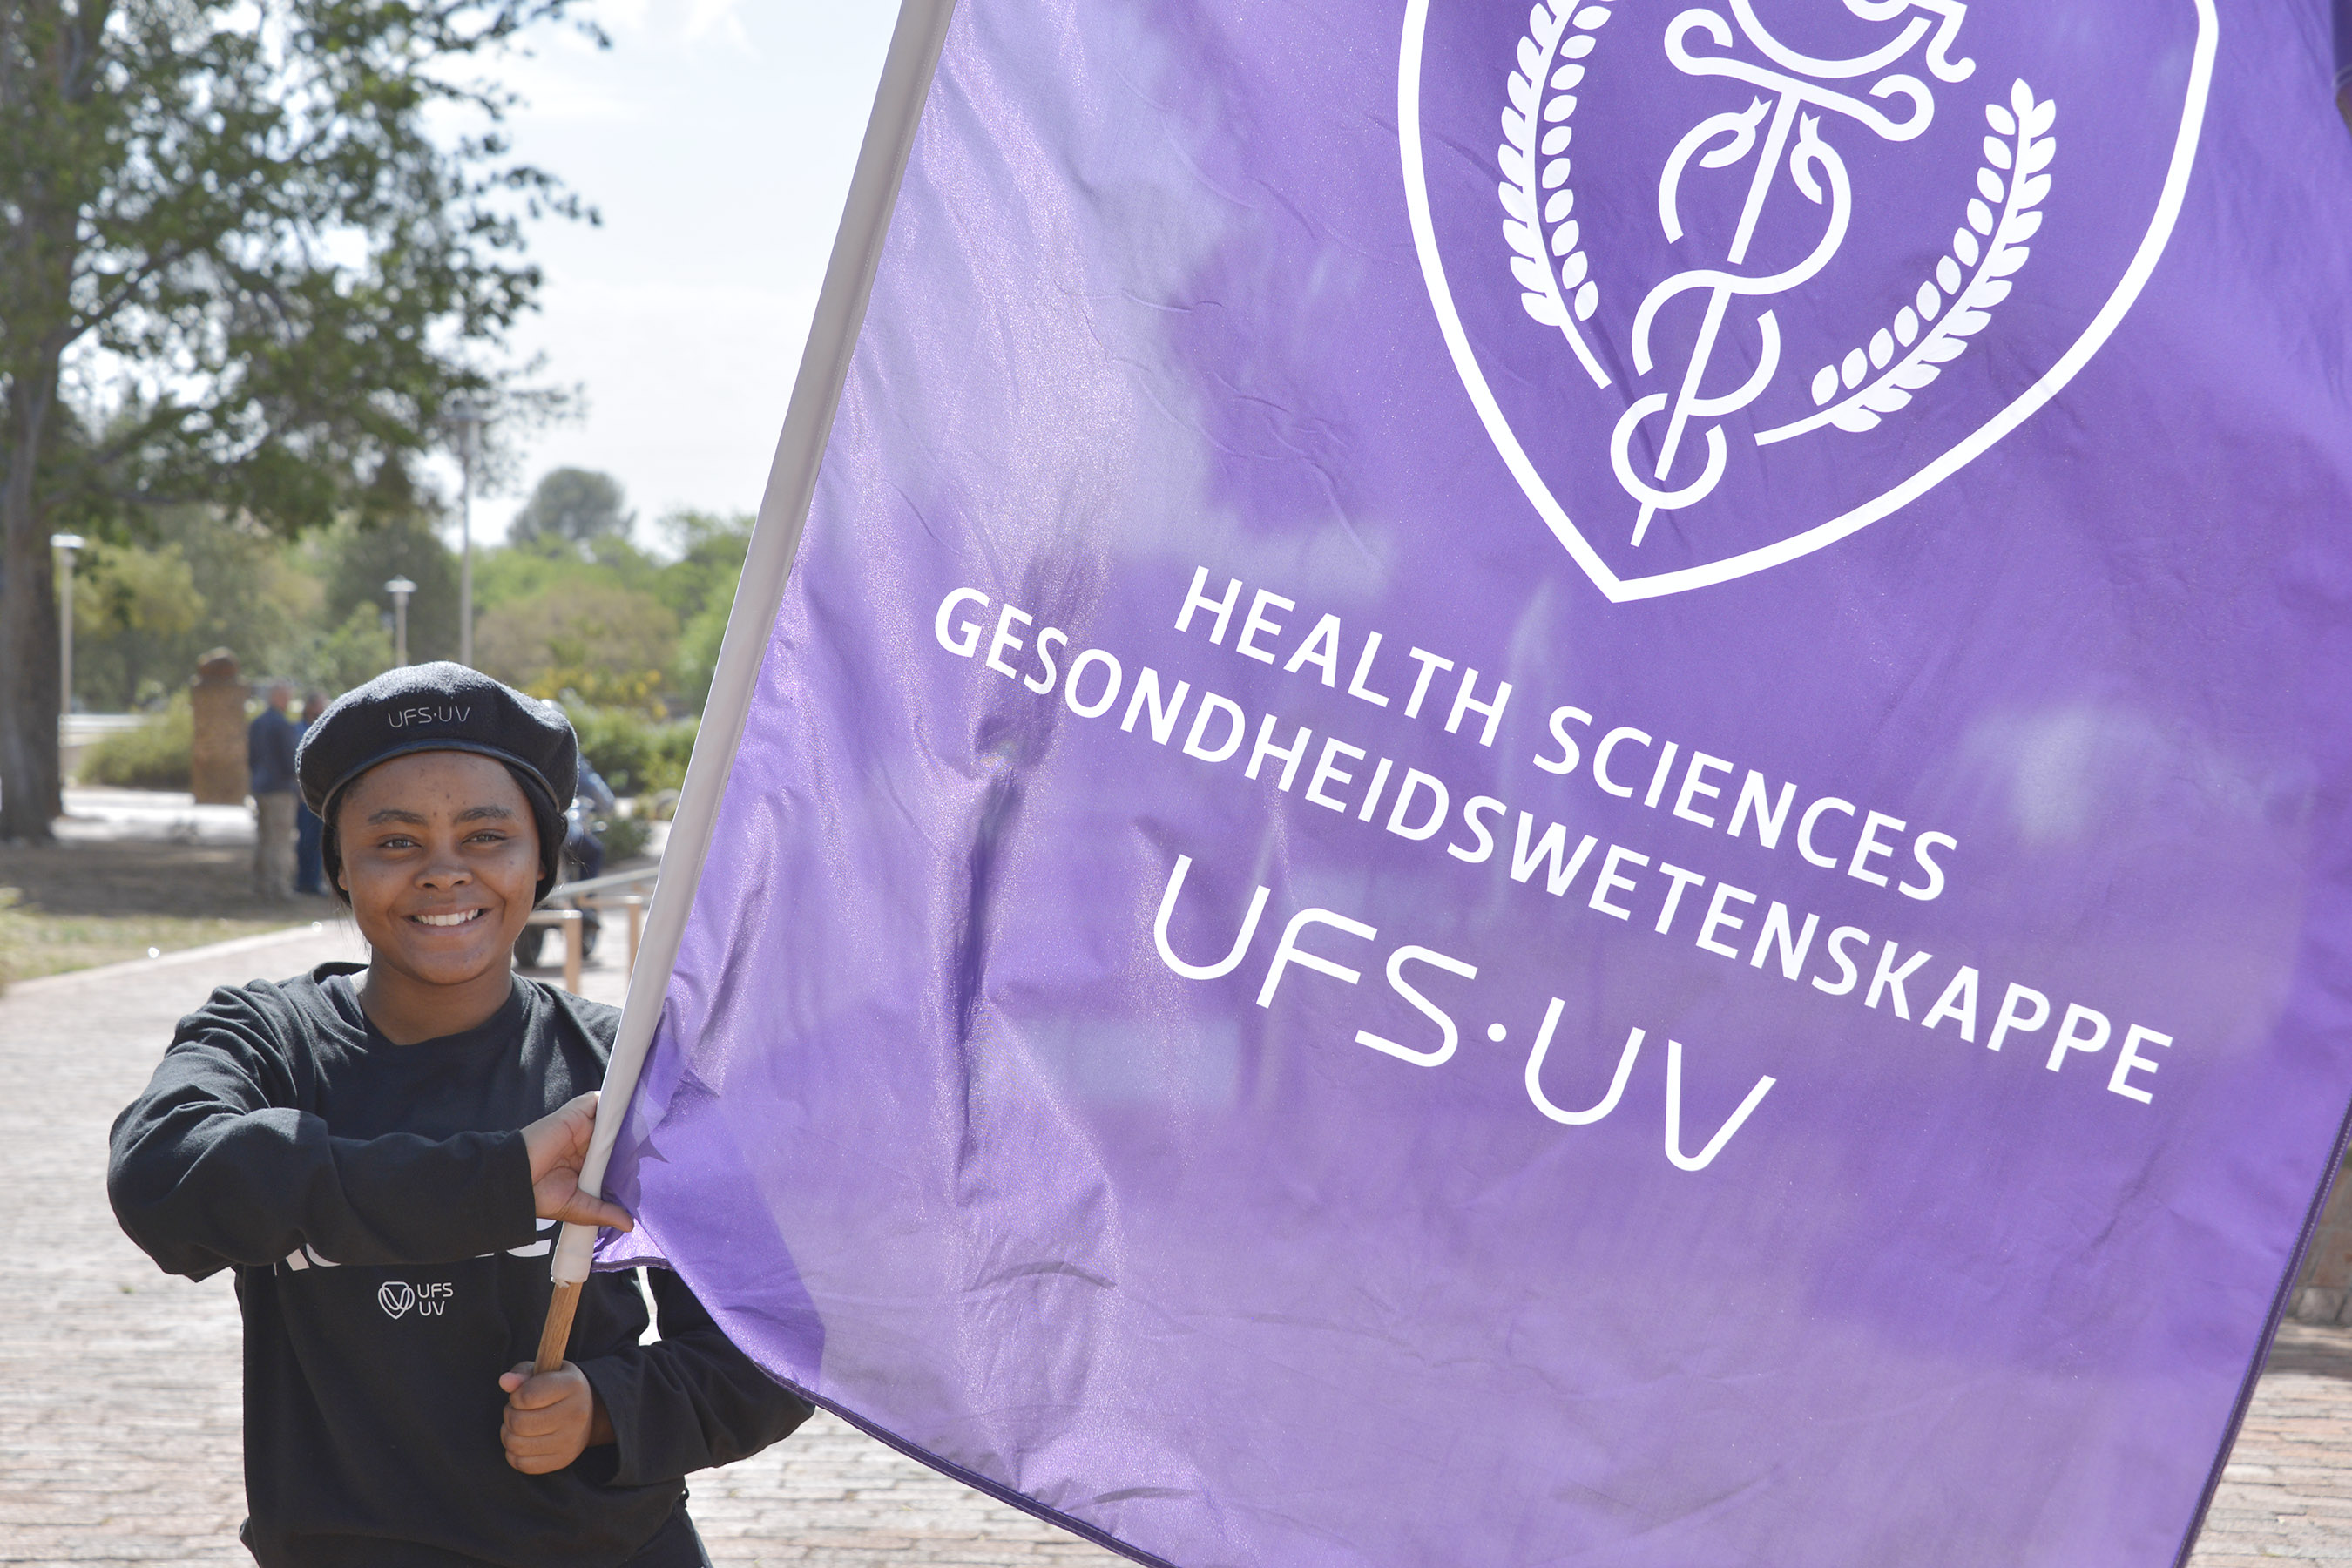 Flag bearer with the Faculty of Health Sciences